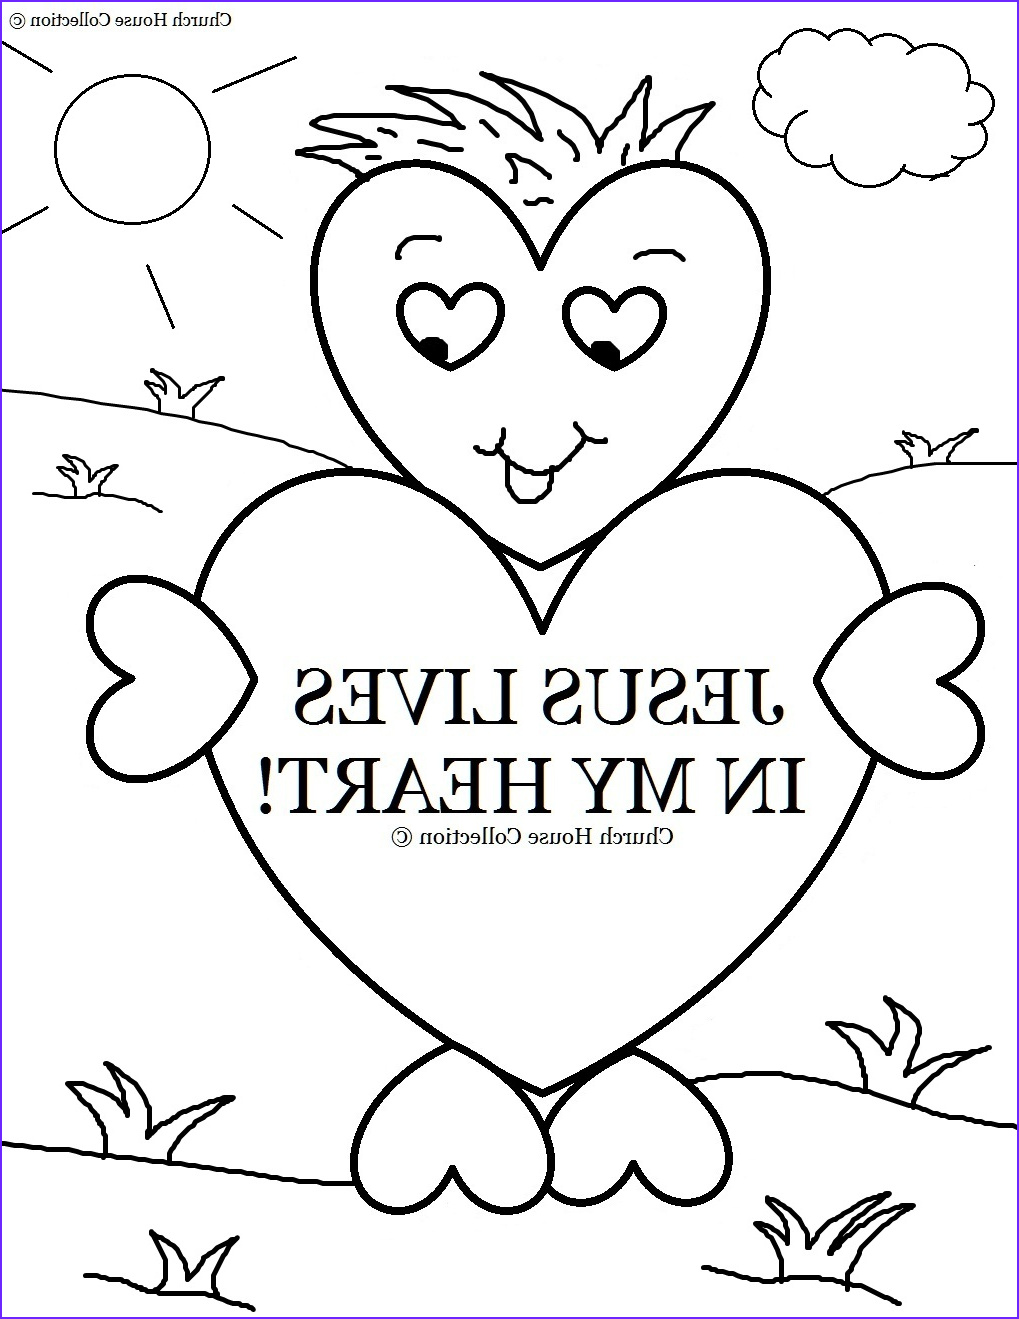 jesus lives in my heart coloring page